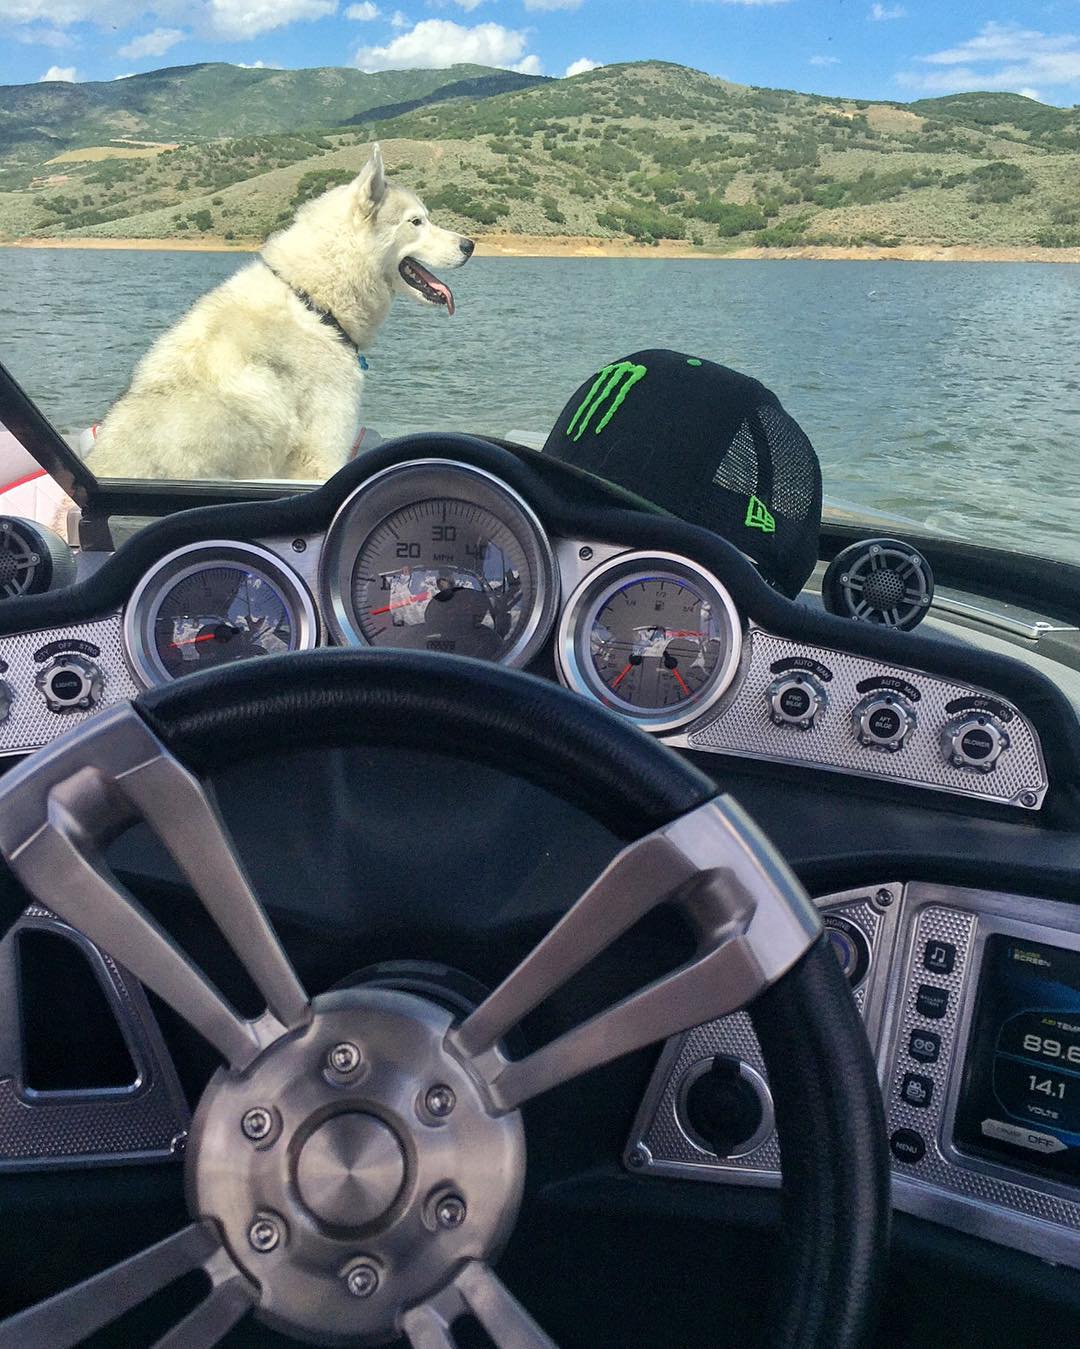 Siberian huskies don't really like water, but they LOVE to chase things. So even though Bentley doesn't really like the boat for swimming - he uses it as his platform to stalk all the deer/animals on the shore. Ha. #perched #alwayshunting #antiswimdog...